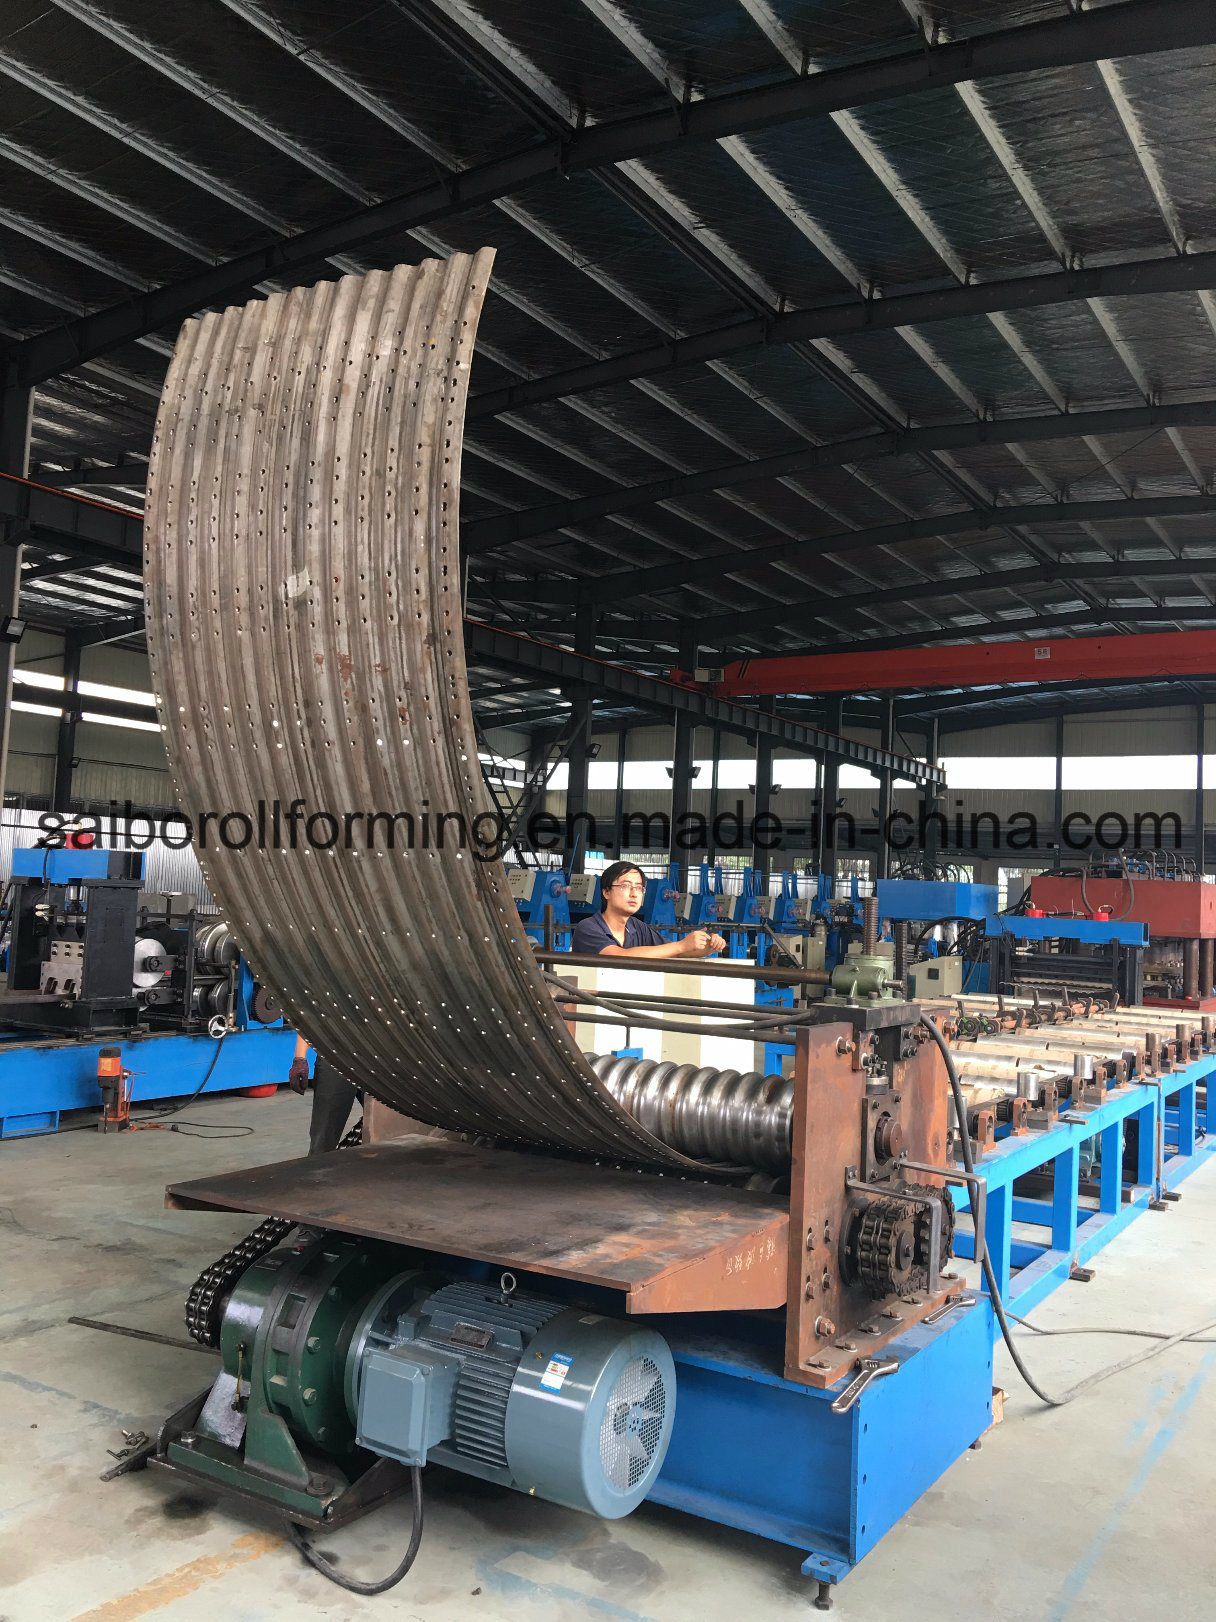 Yx12-76-1064 Silo Roll Forming Machine (3mm)